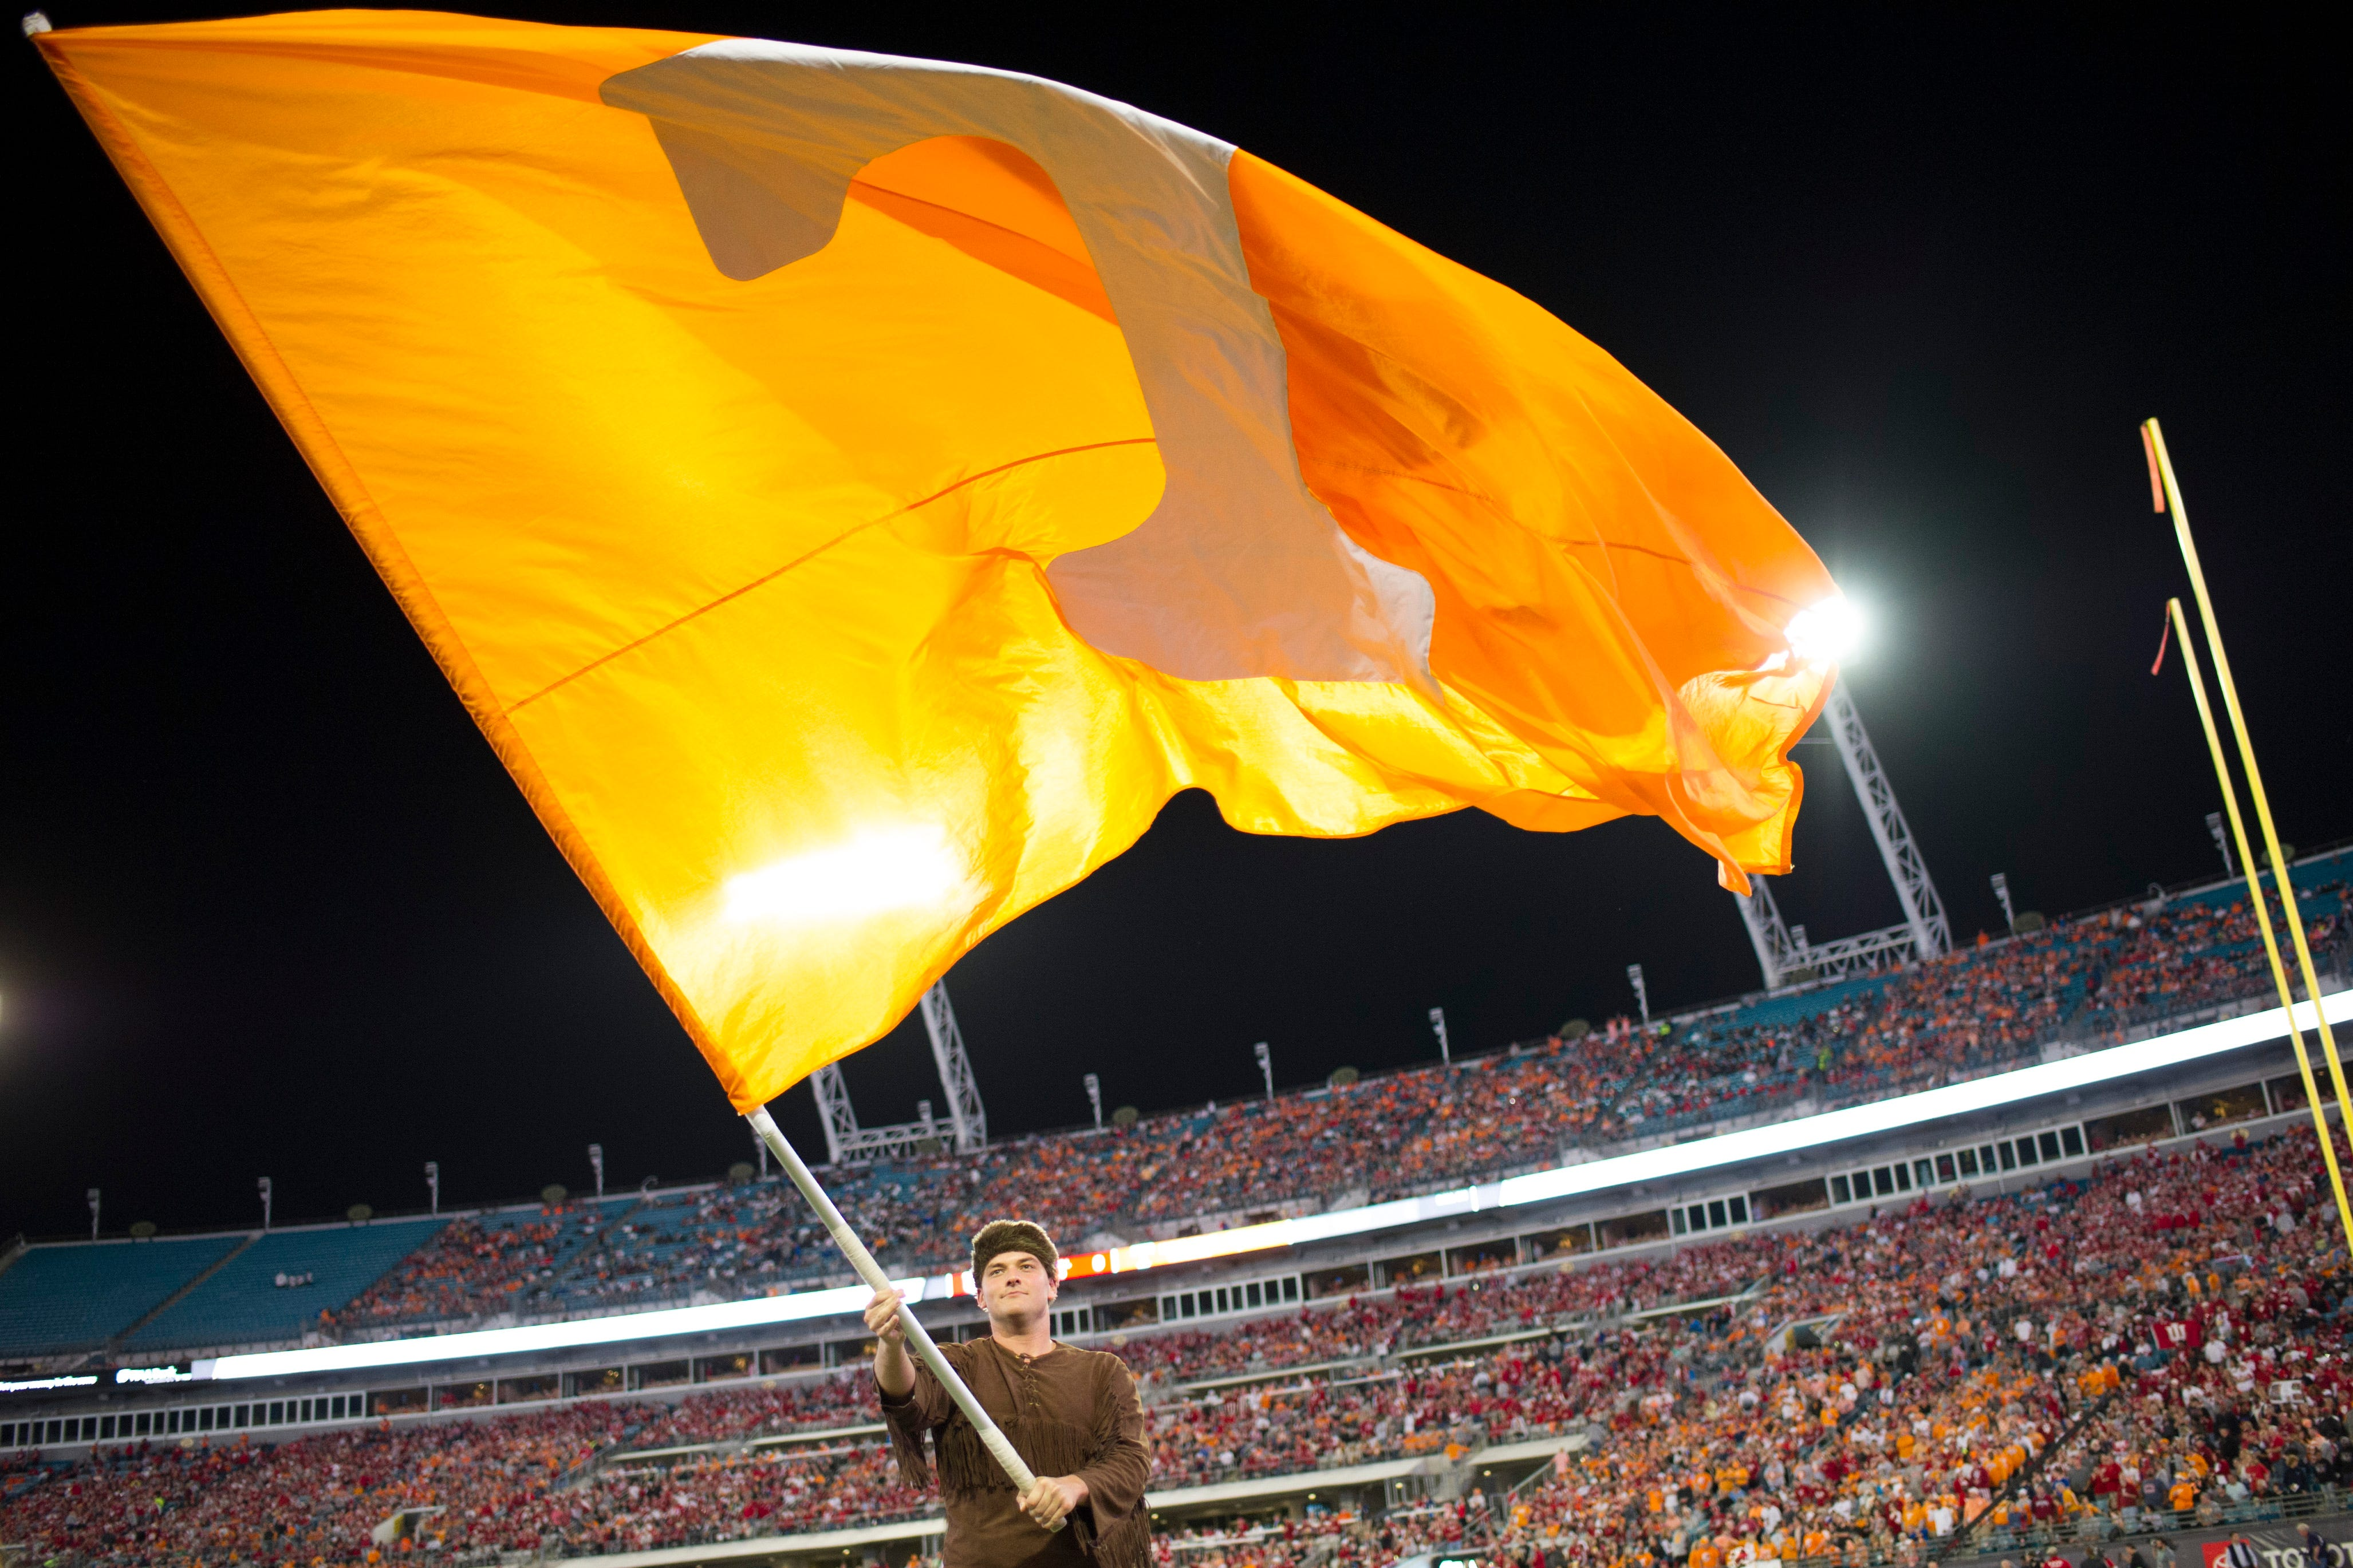 Syndication: Knoxville